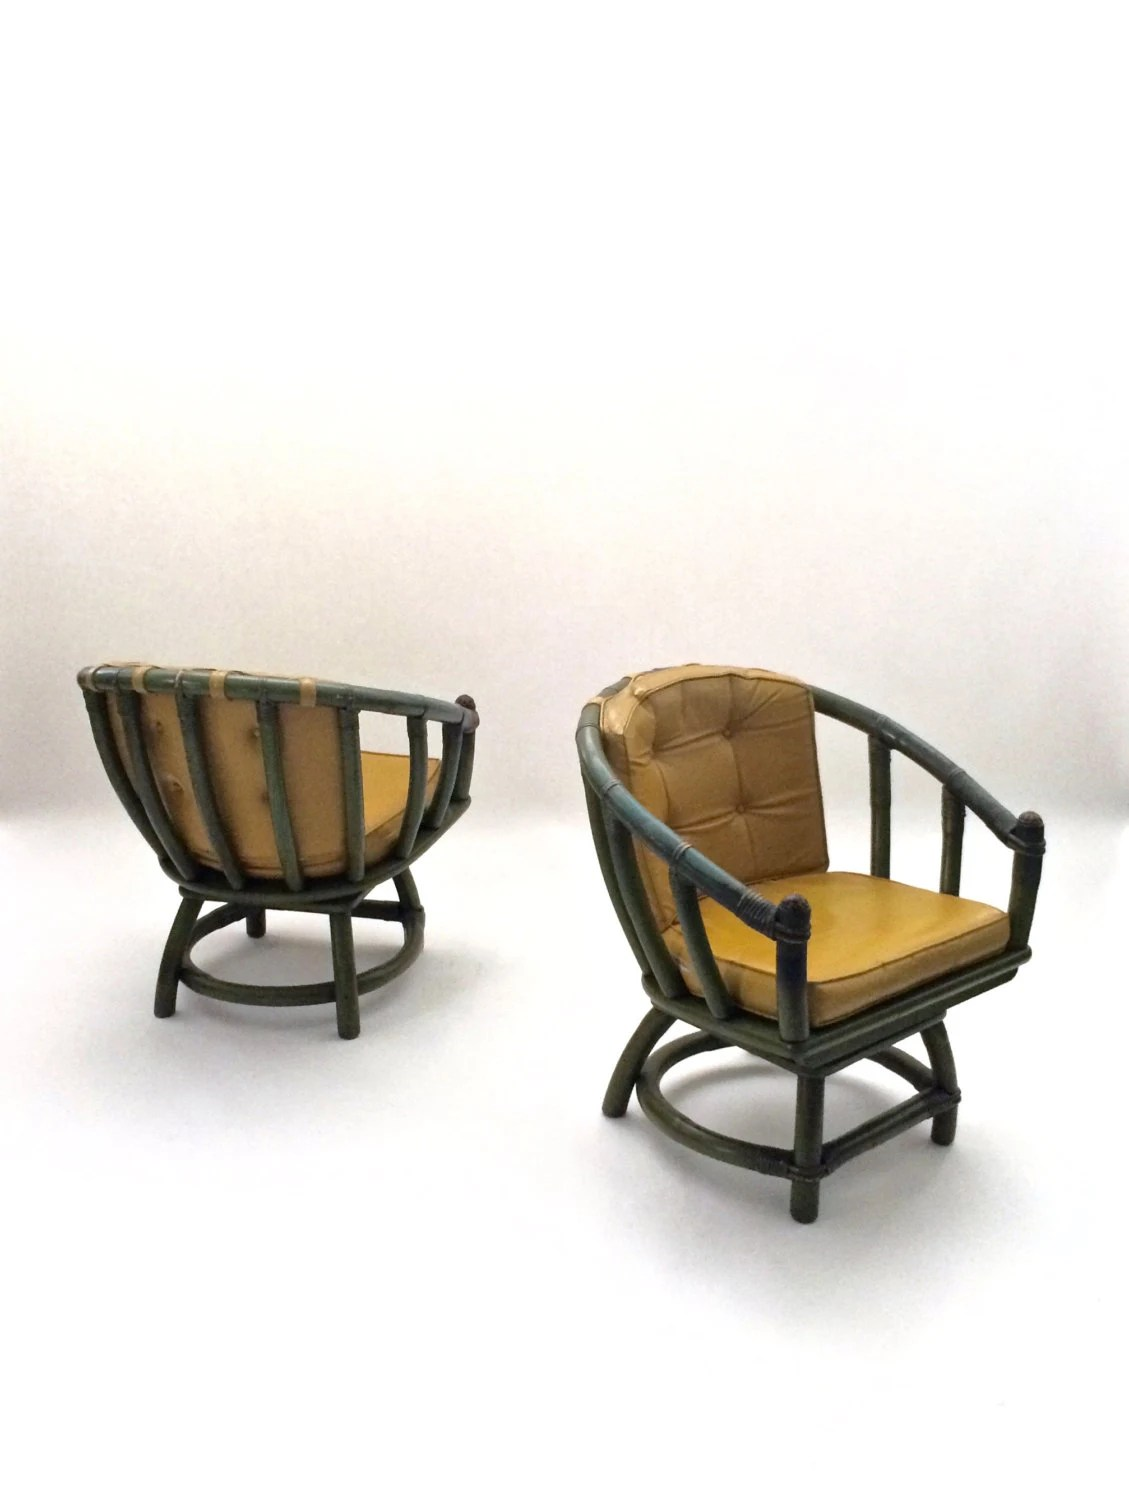 ficks reed chair gold glitter covers pair vintage rattan bamboo swivel armchairs